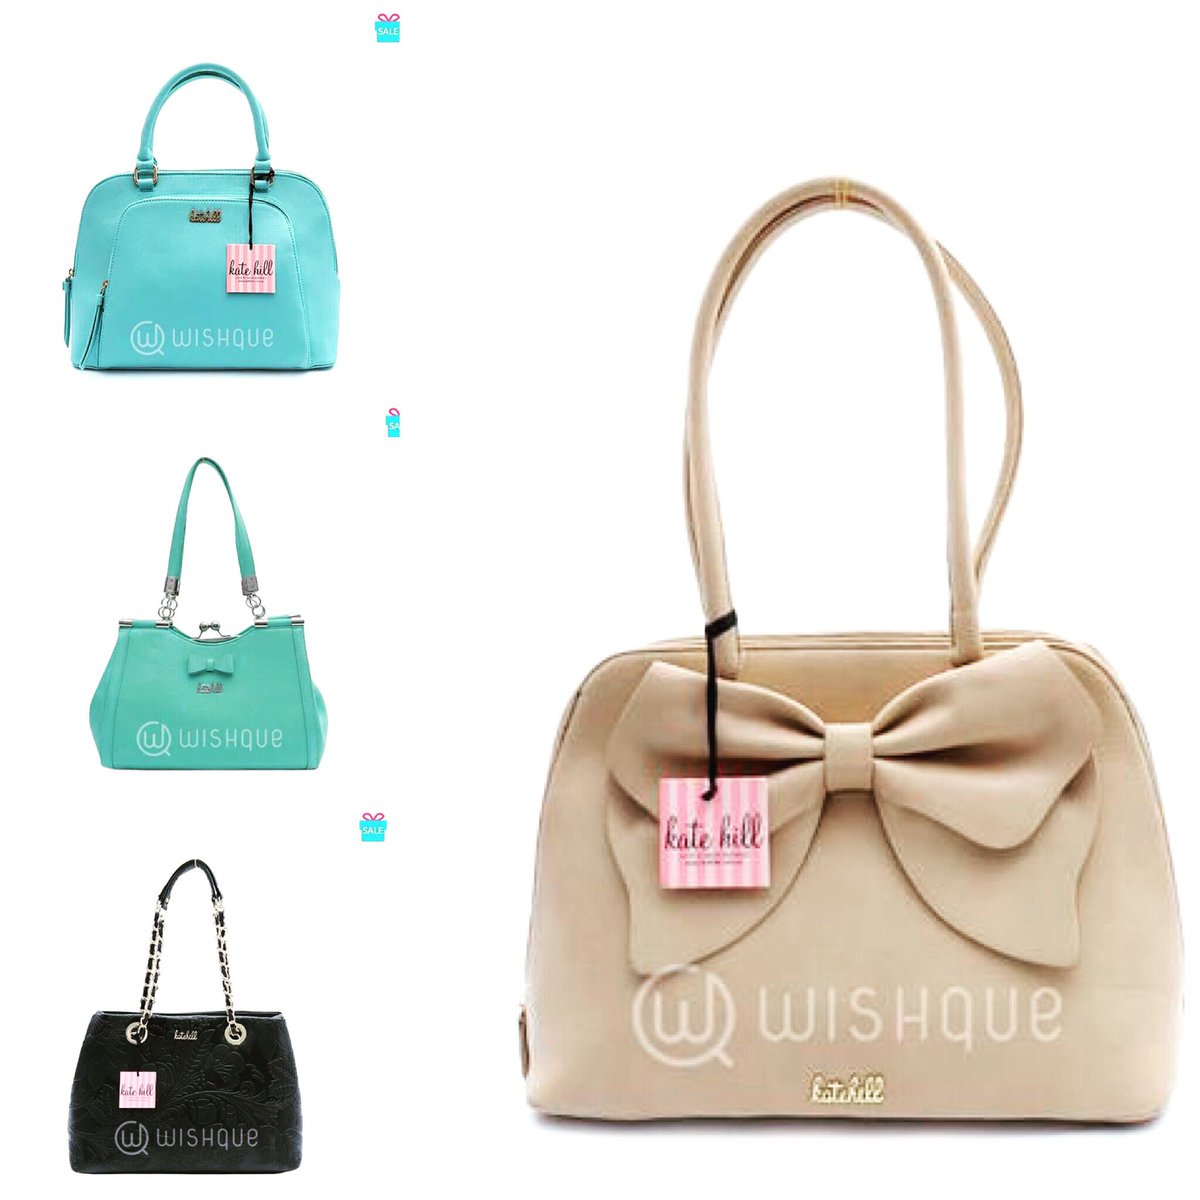 Wishque On Twitter Australian Designer Original Kate Hill Handbags Are Now 20 Off Branded Available For Island Wide Delivery